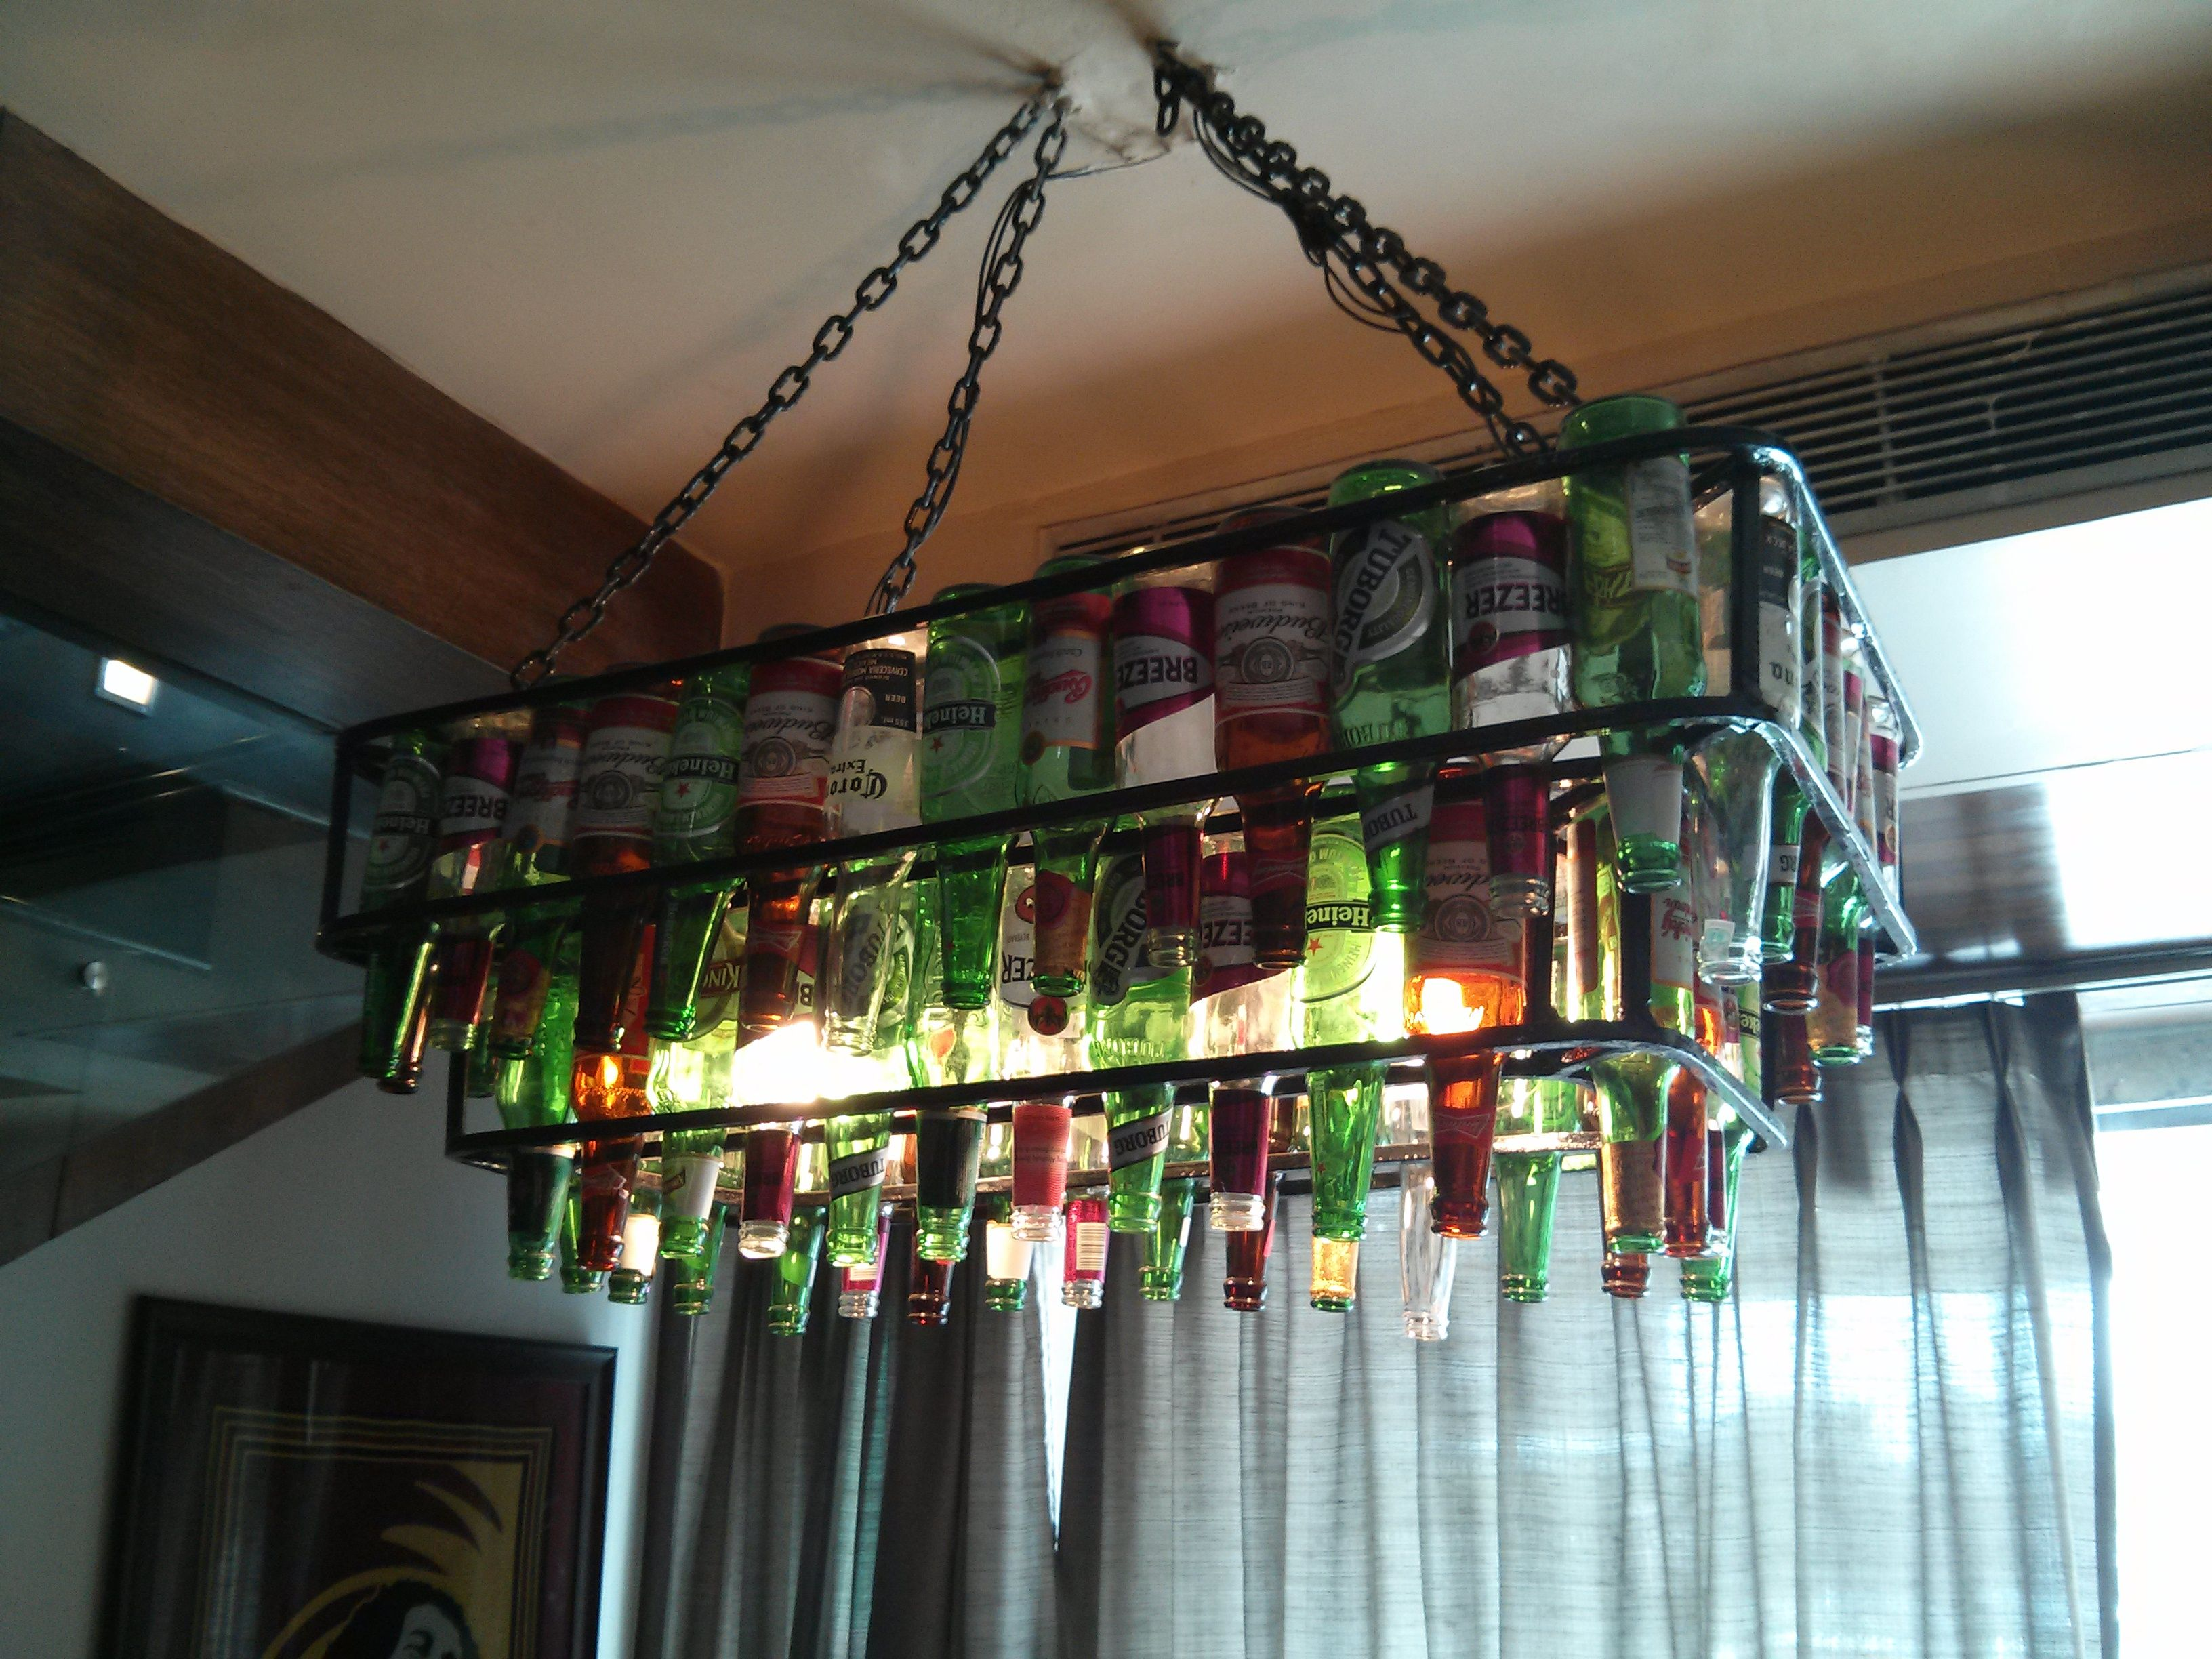 Beer bottle chandelier xiiandelhi b quirky interiors beer bottle chandelier xiiandelhi arubaitofo Images